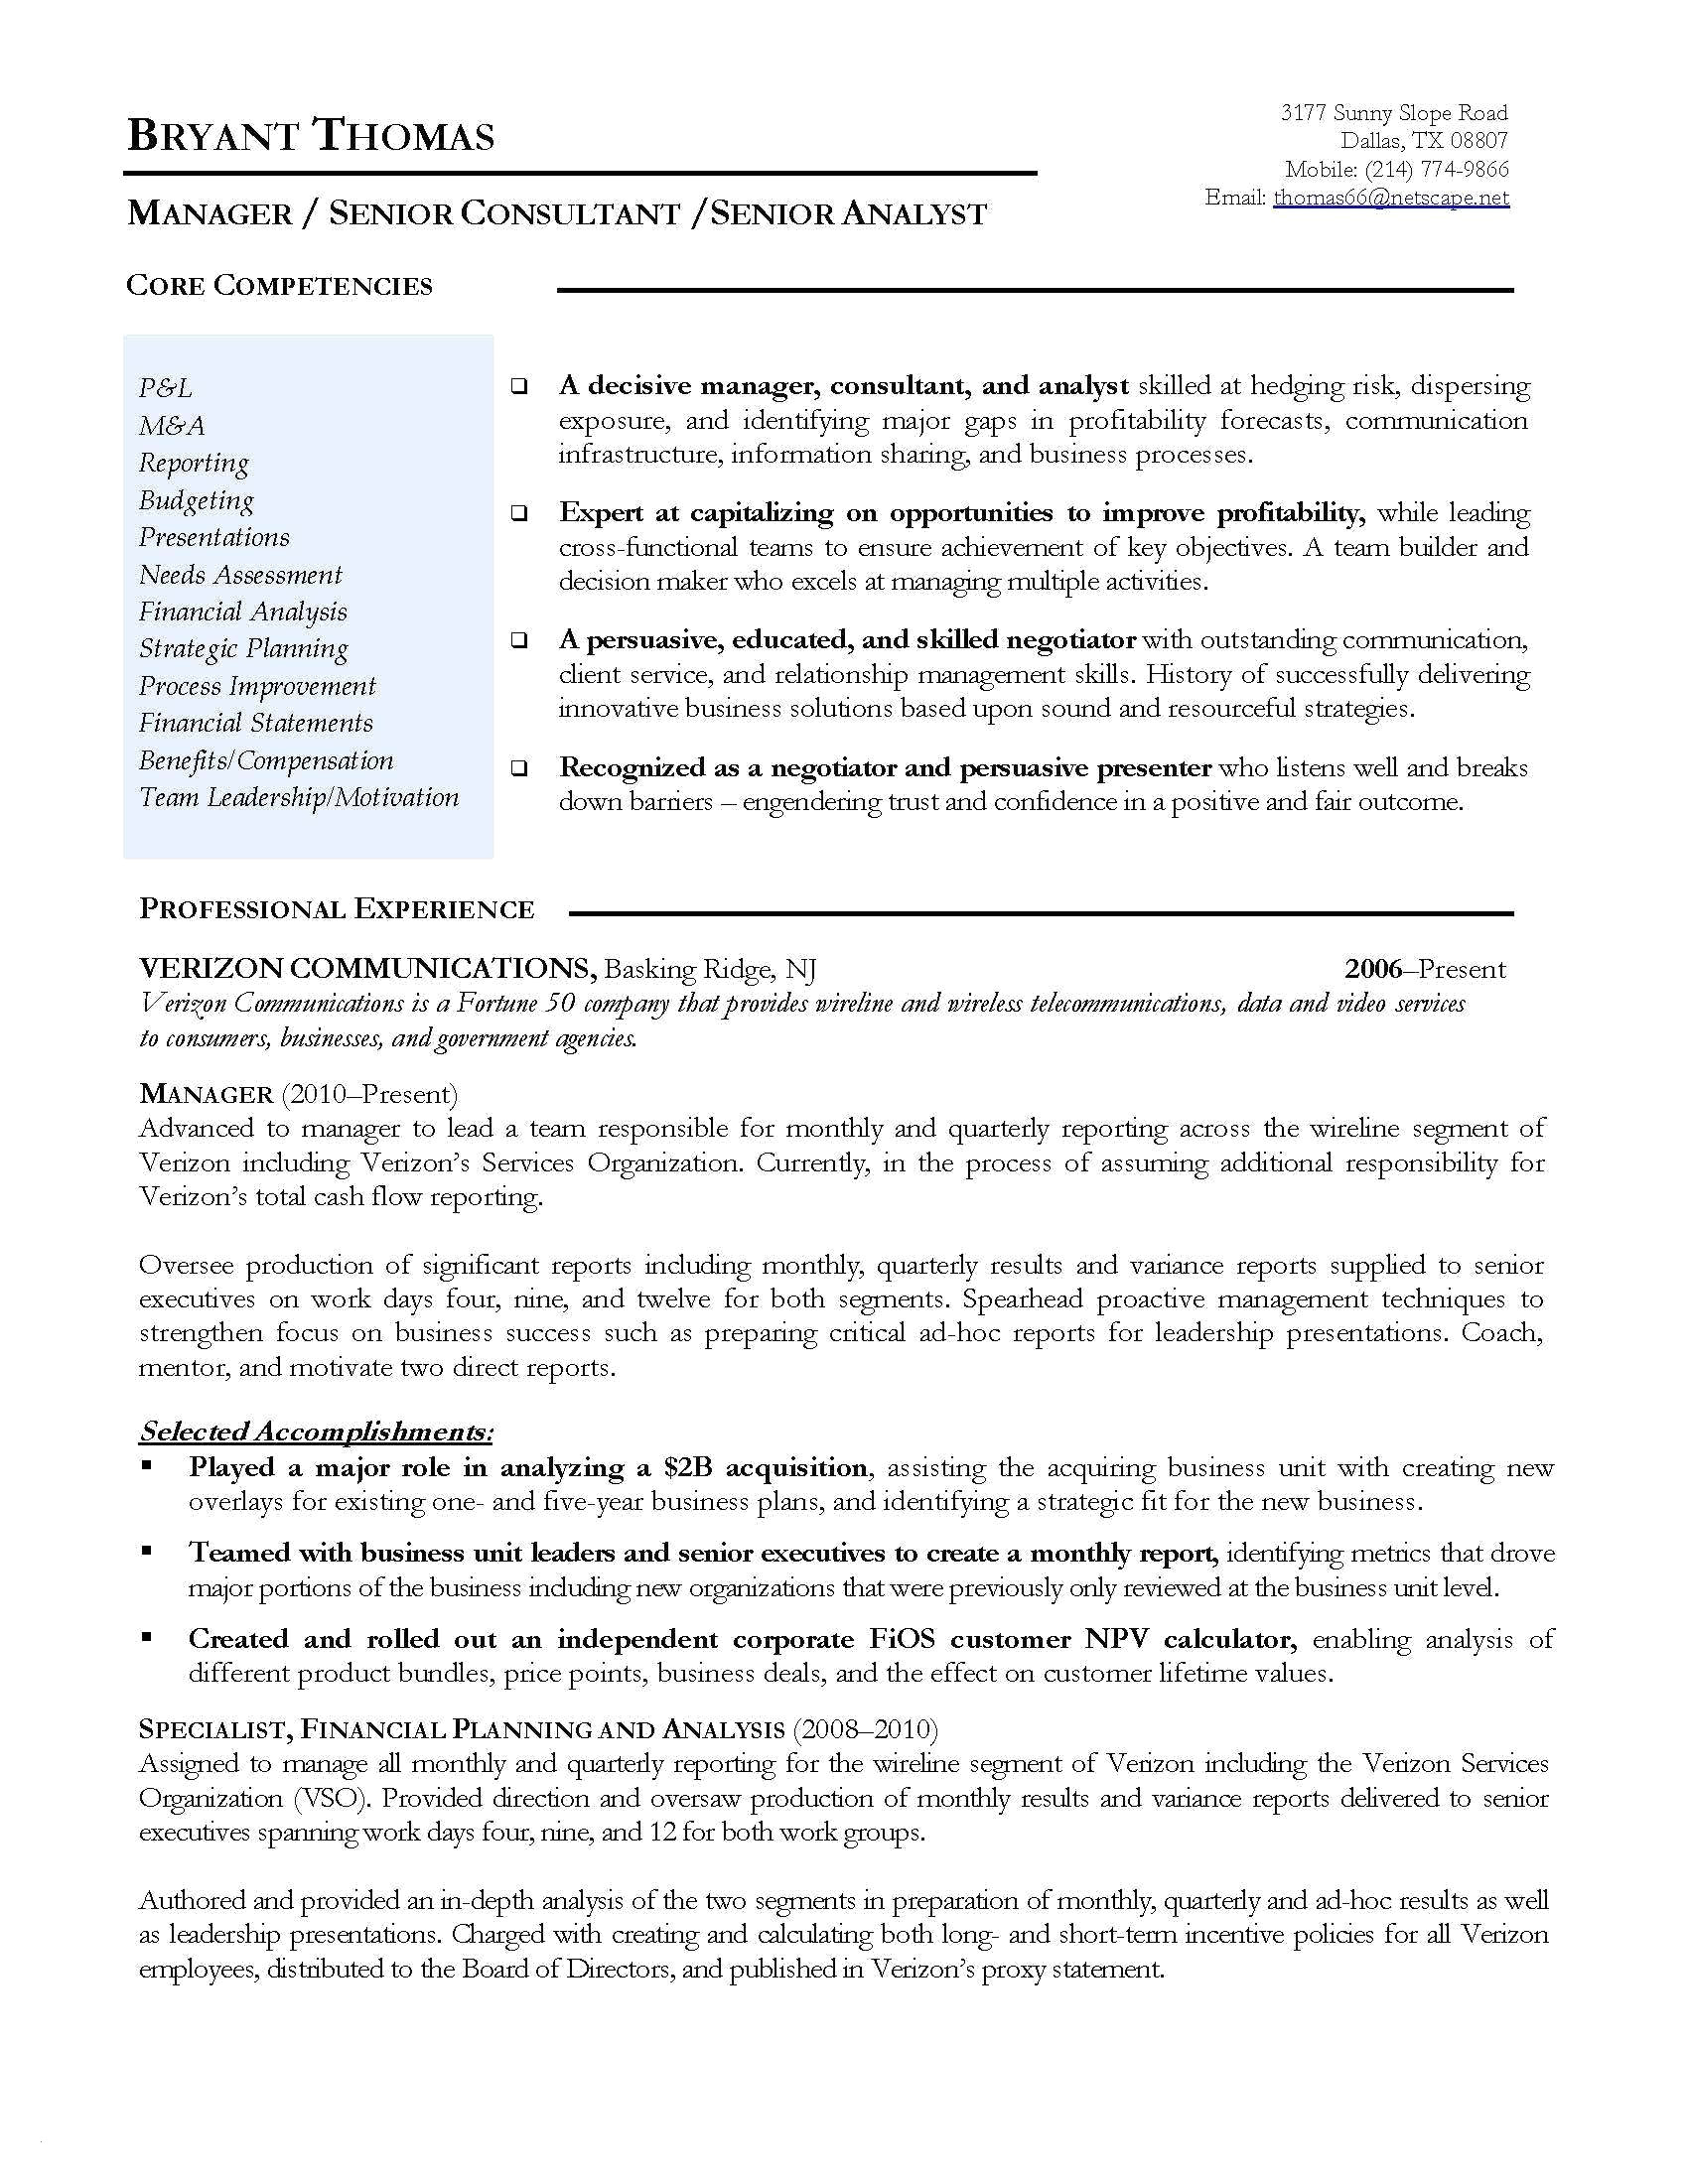 Product Management Resume - 40 Fresh Product Manager Resume